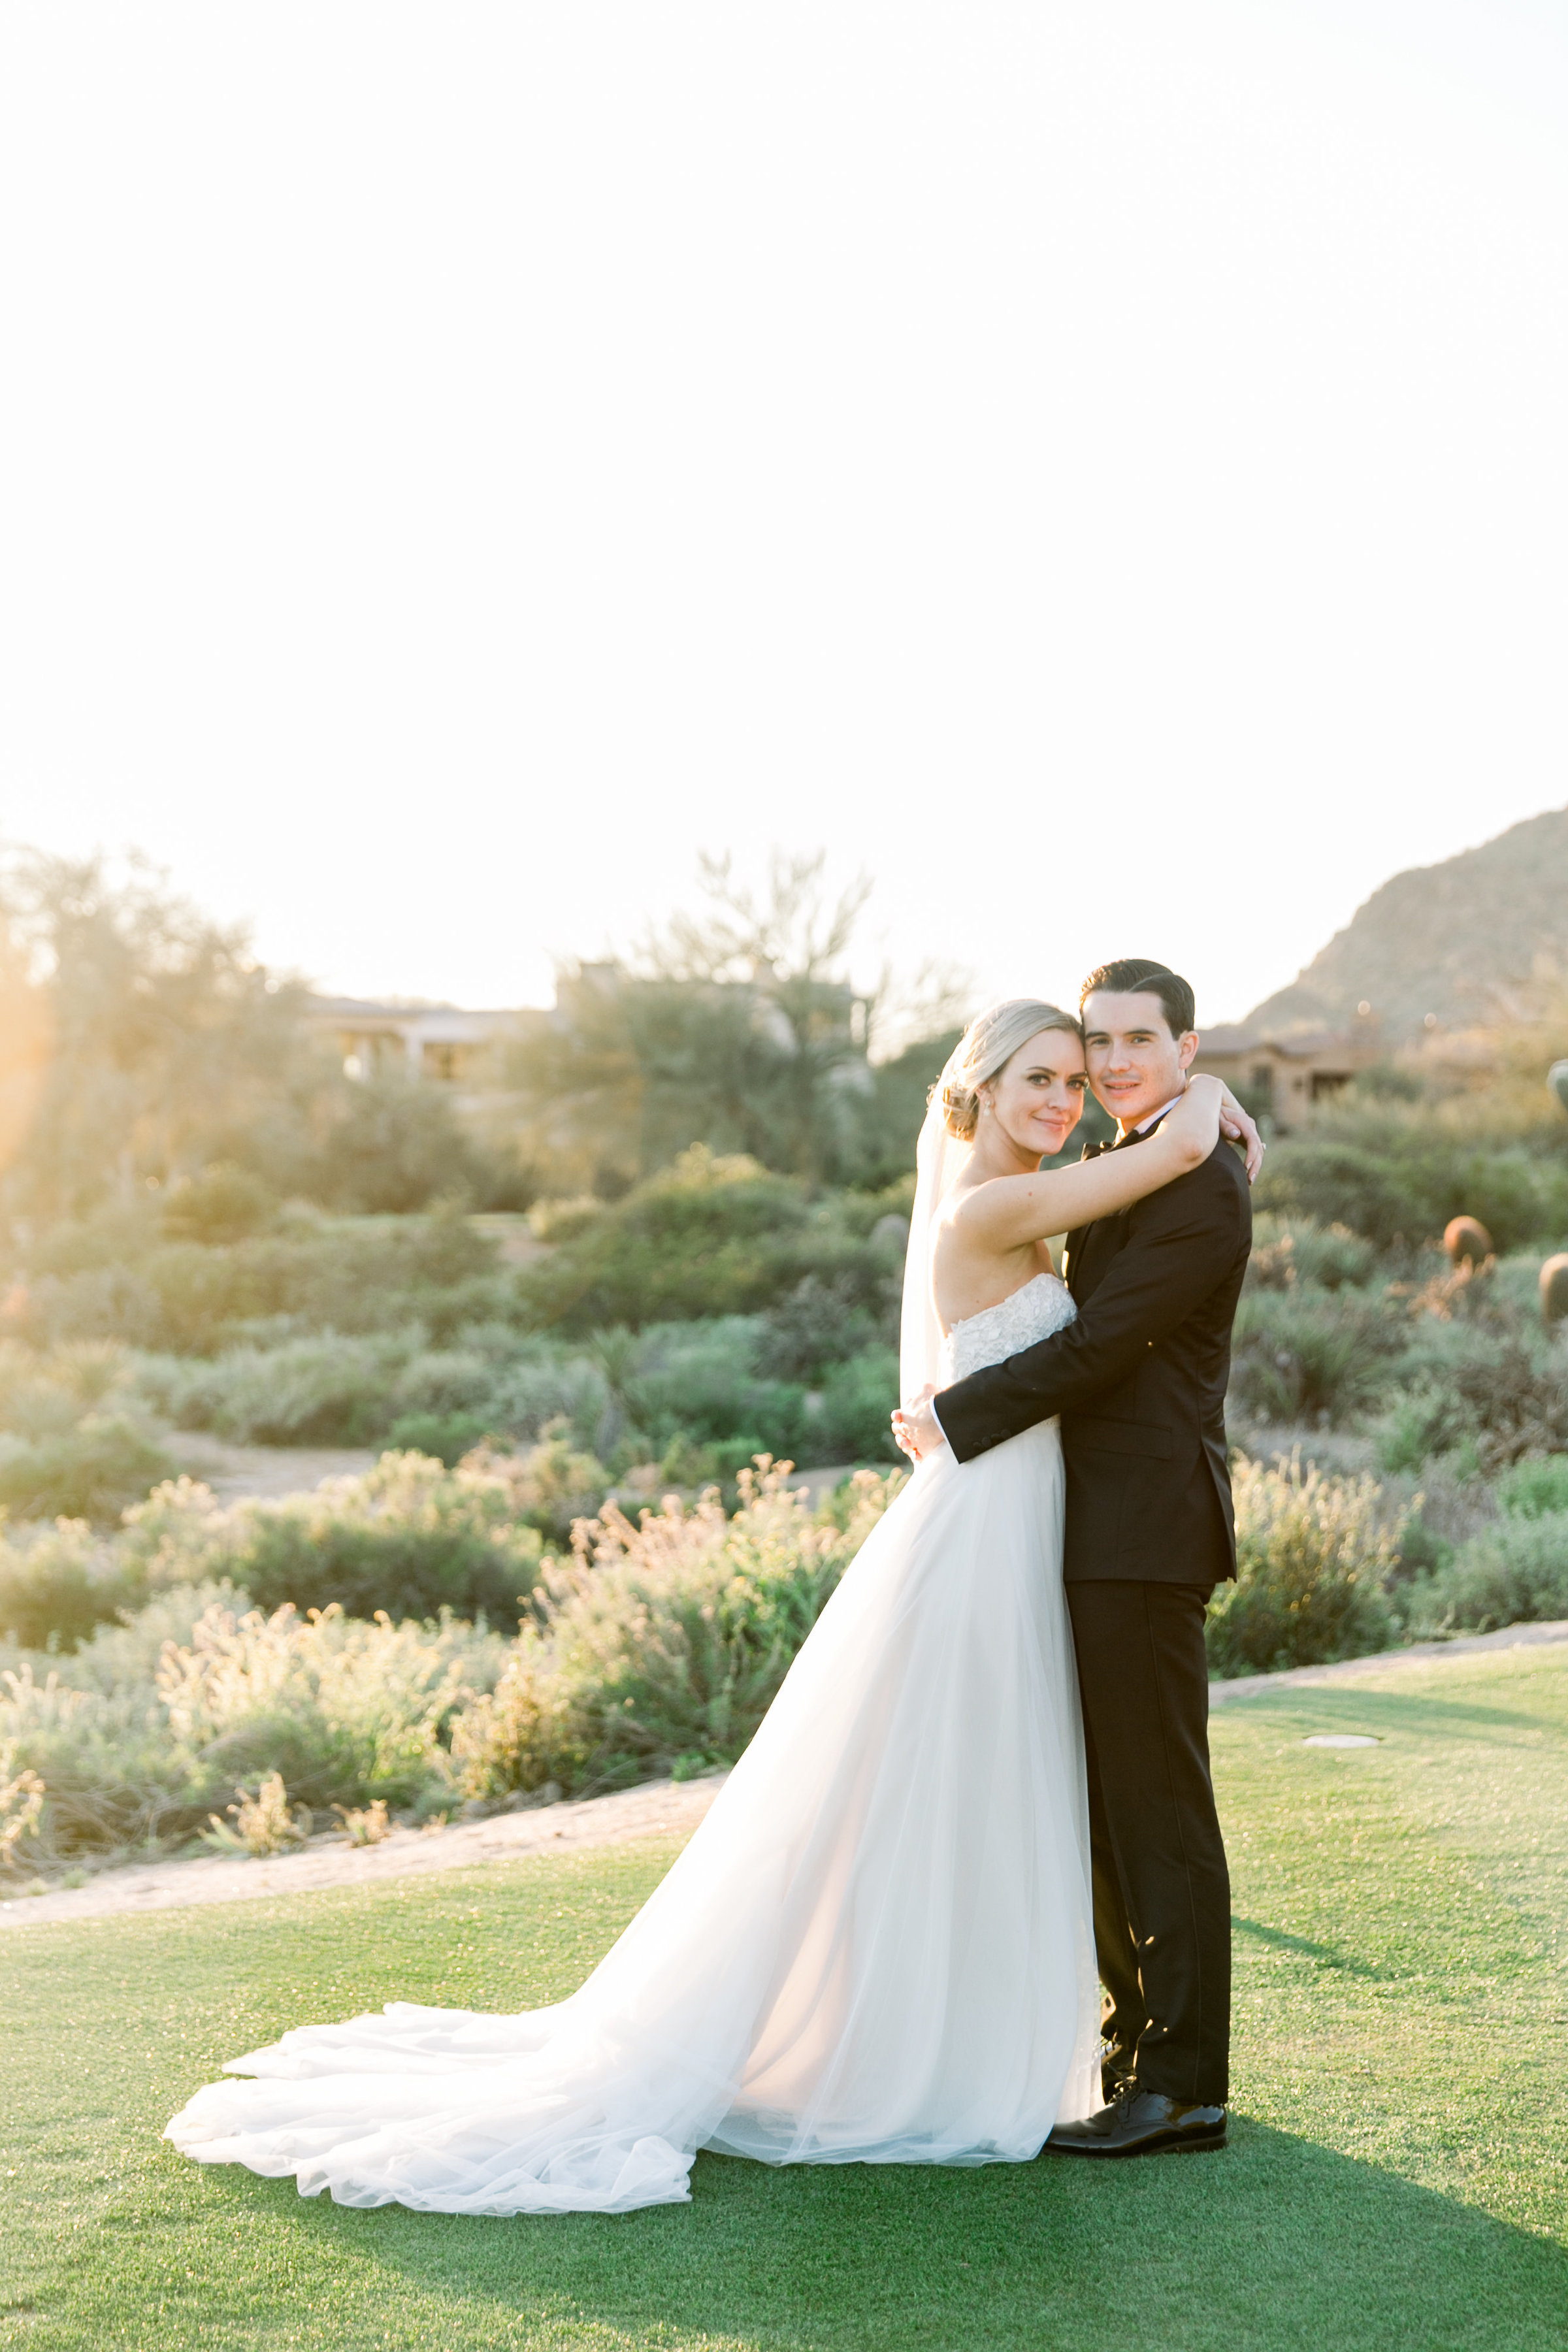 Karlie Colleen Photography - Arizona Wedding at The Troon Scottsdale Country Club - Paige & Shane -655